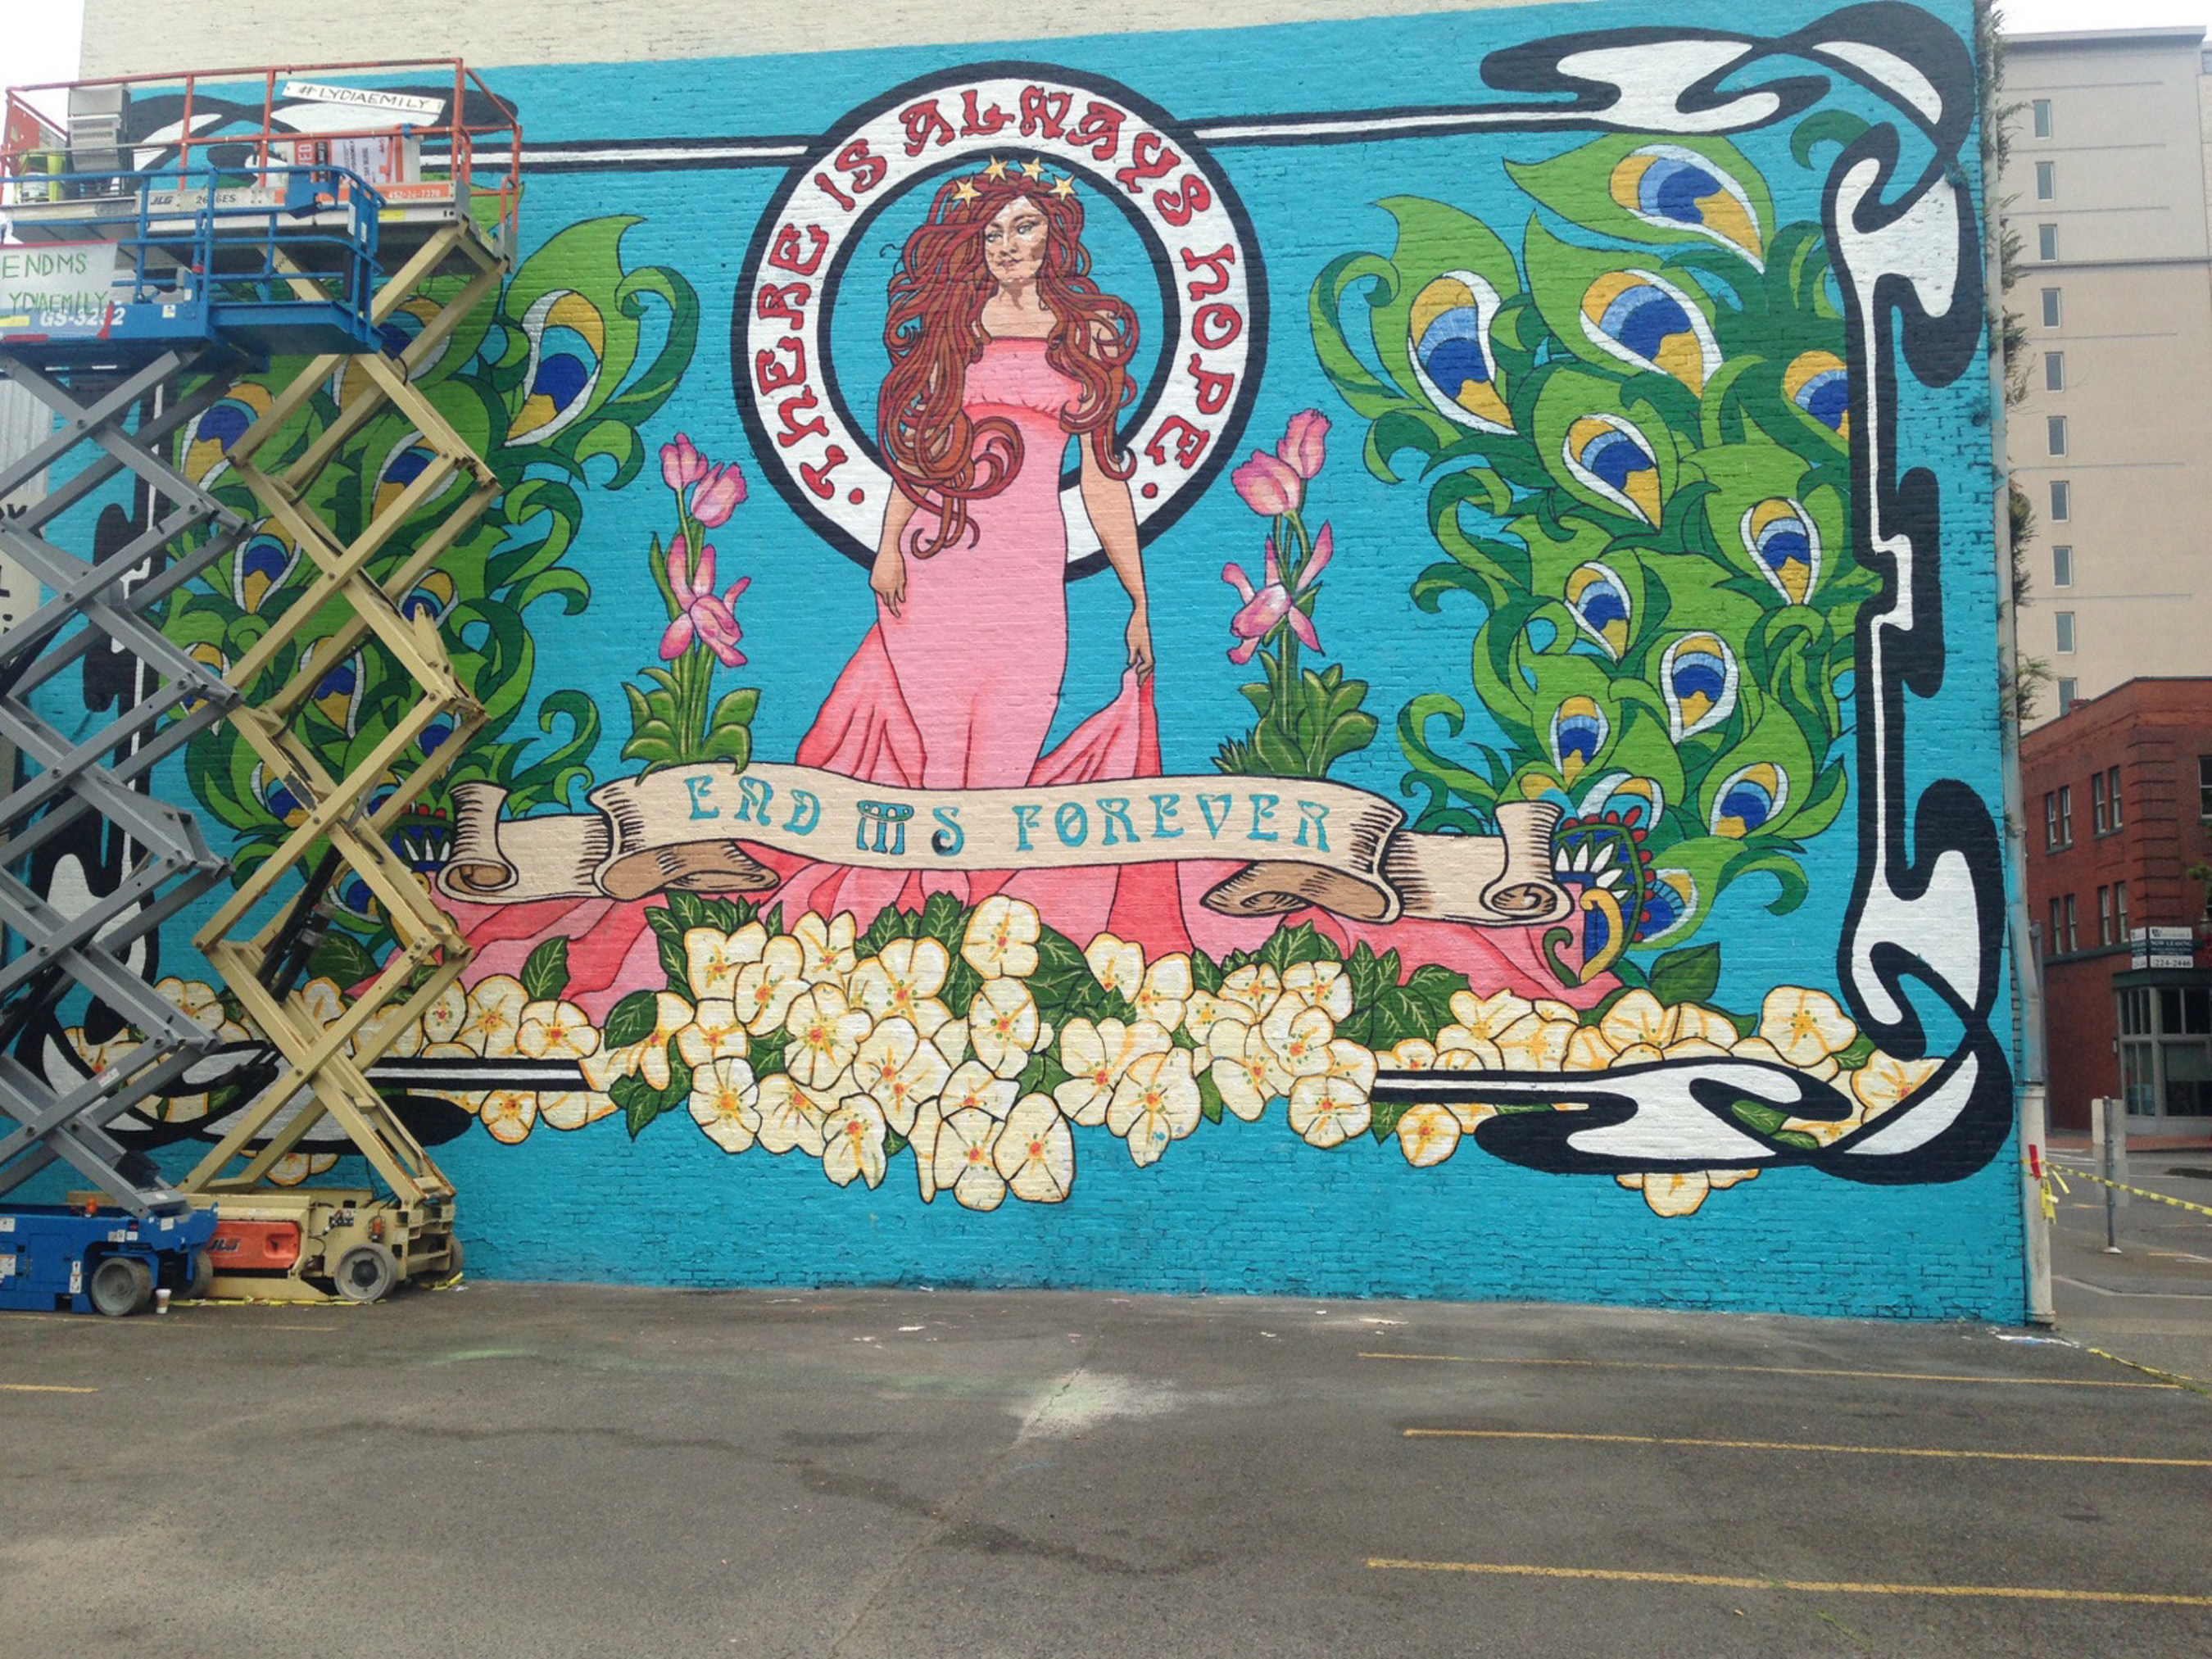 """End MS Forever"" National MS Society mural - Final touches await as internationally acclaimed street artist Lydiaemily demonstrates how she and others are stronger than MS with her mural for World MS Day in Portland, OR.   Part of her four-city series of MS awareness murals, additional locations include Austin, Tx;  Louisville, KY; and Los Angeles, CA."